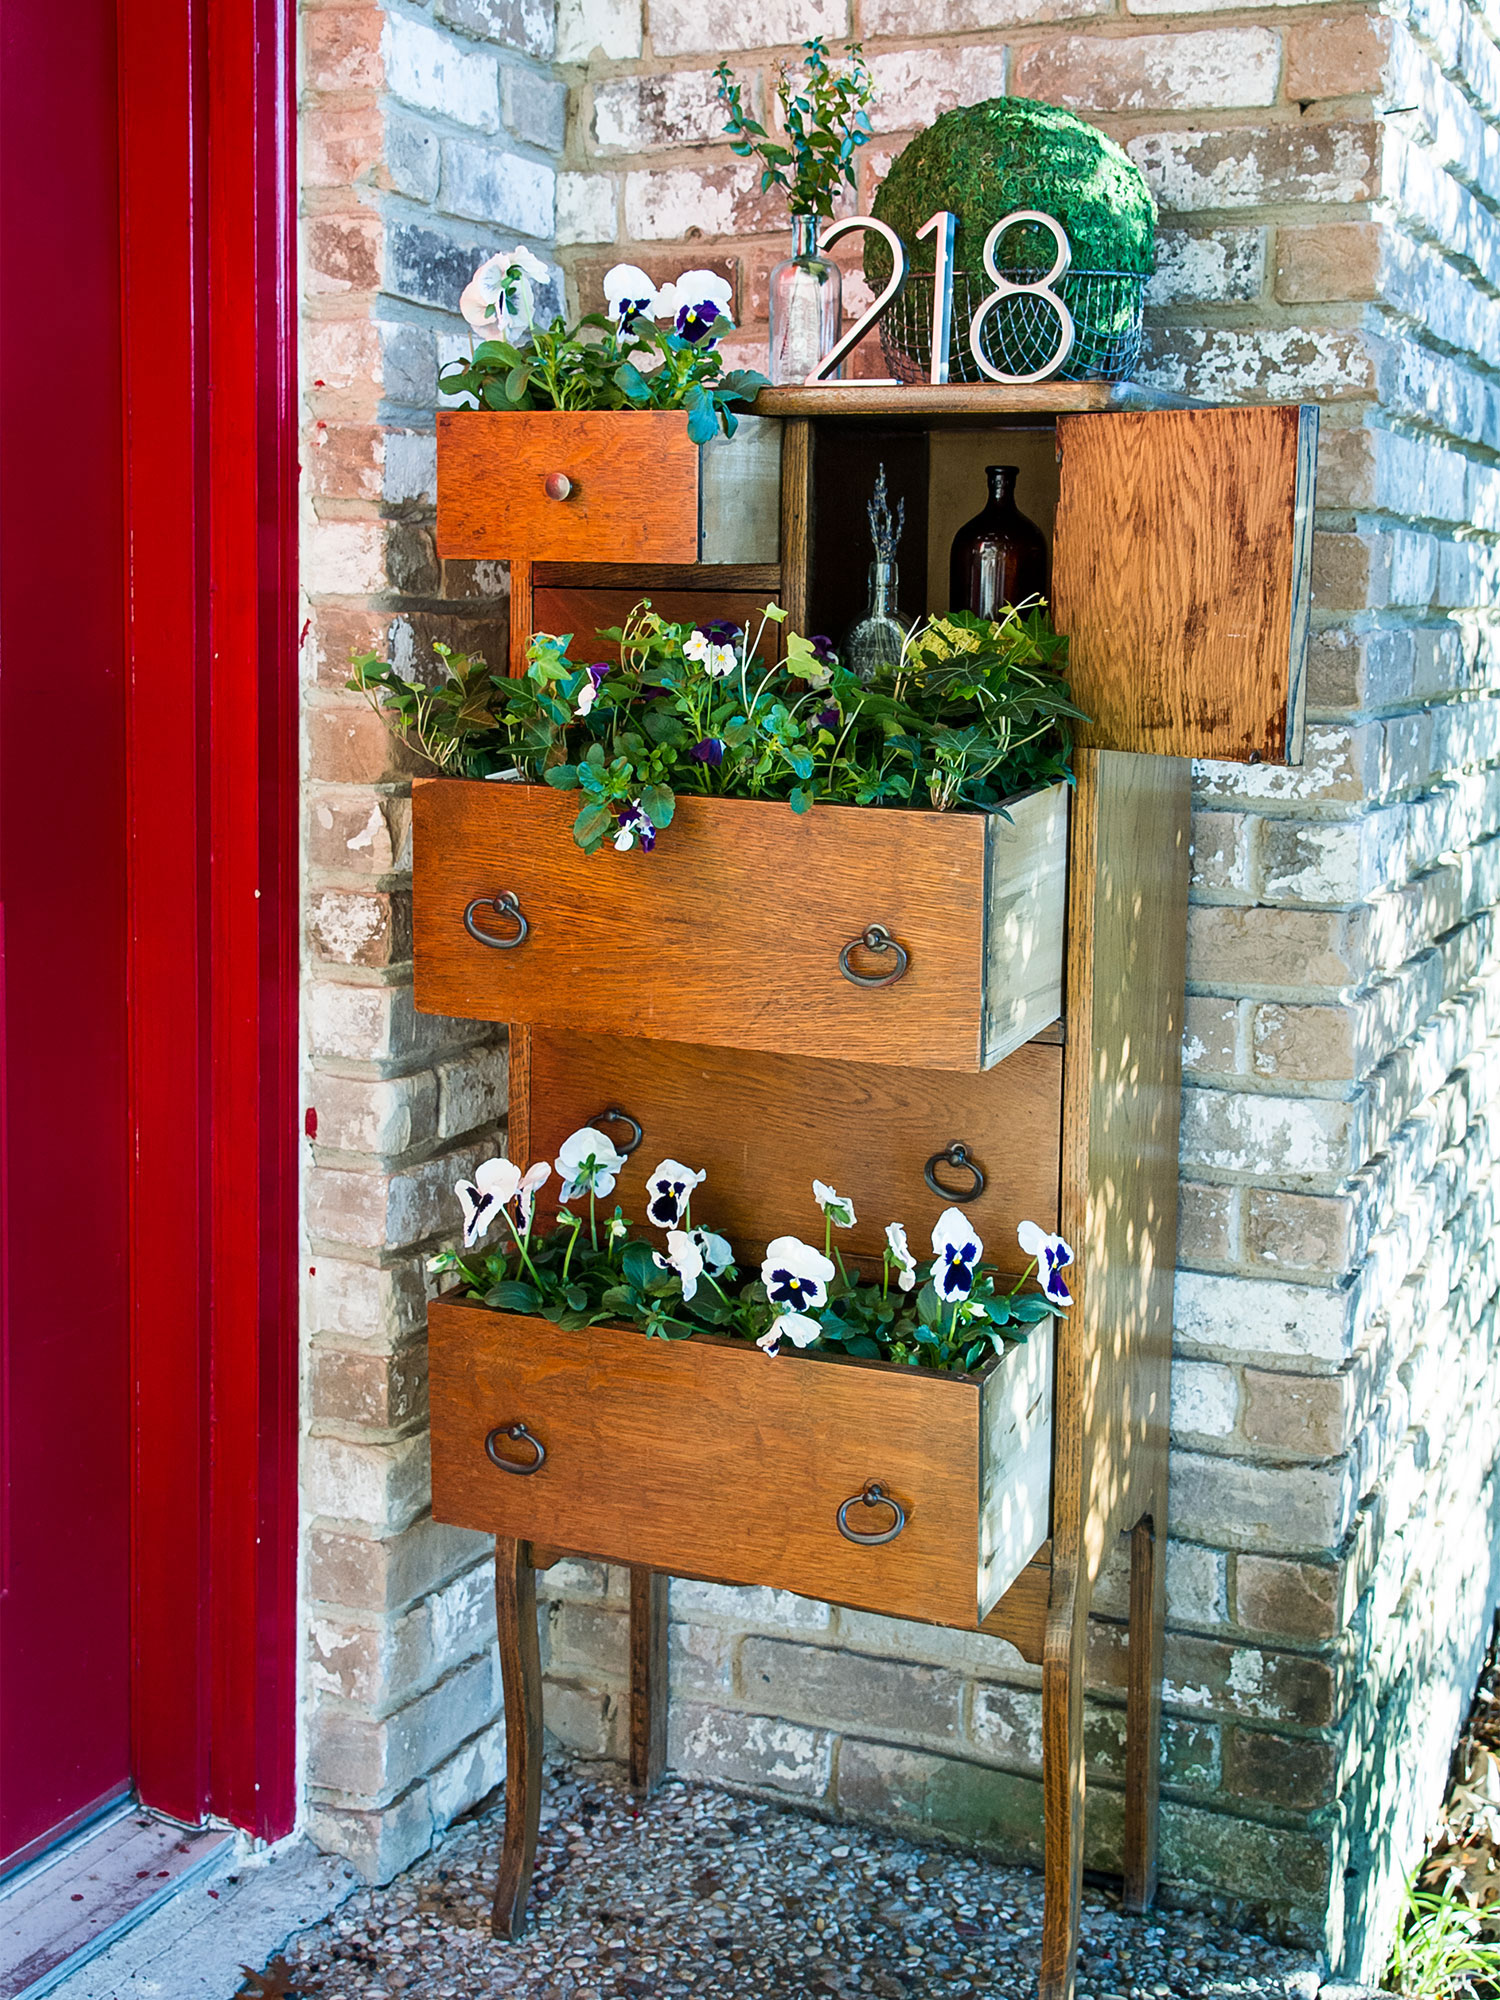 Dresser Porch Decor by Sam Henderson of Today's Nest for HGTV.